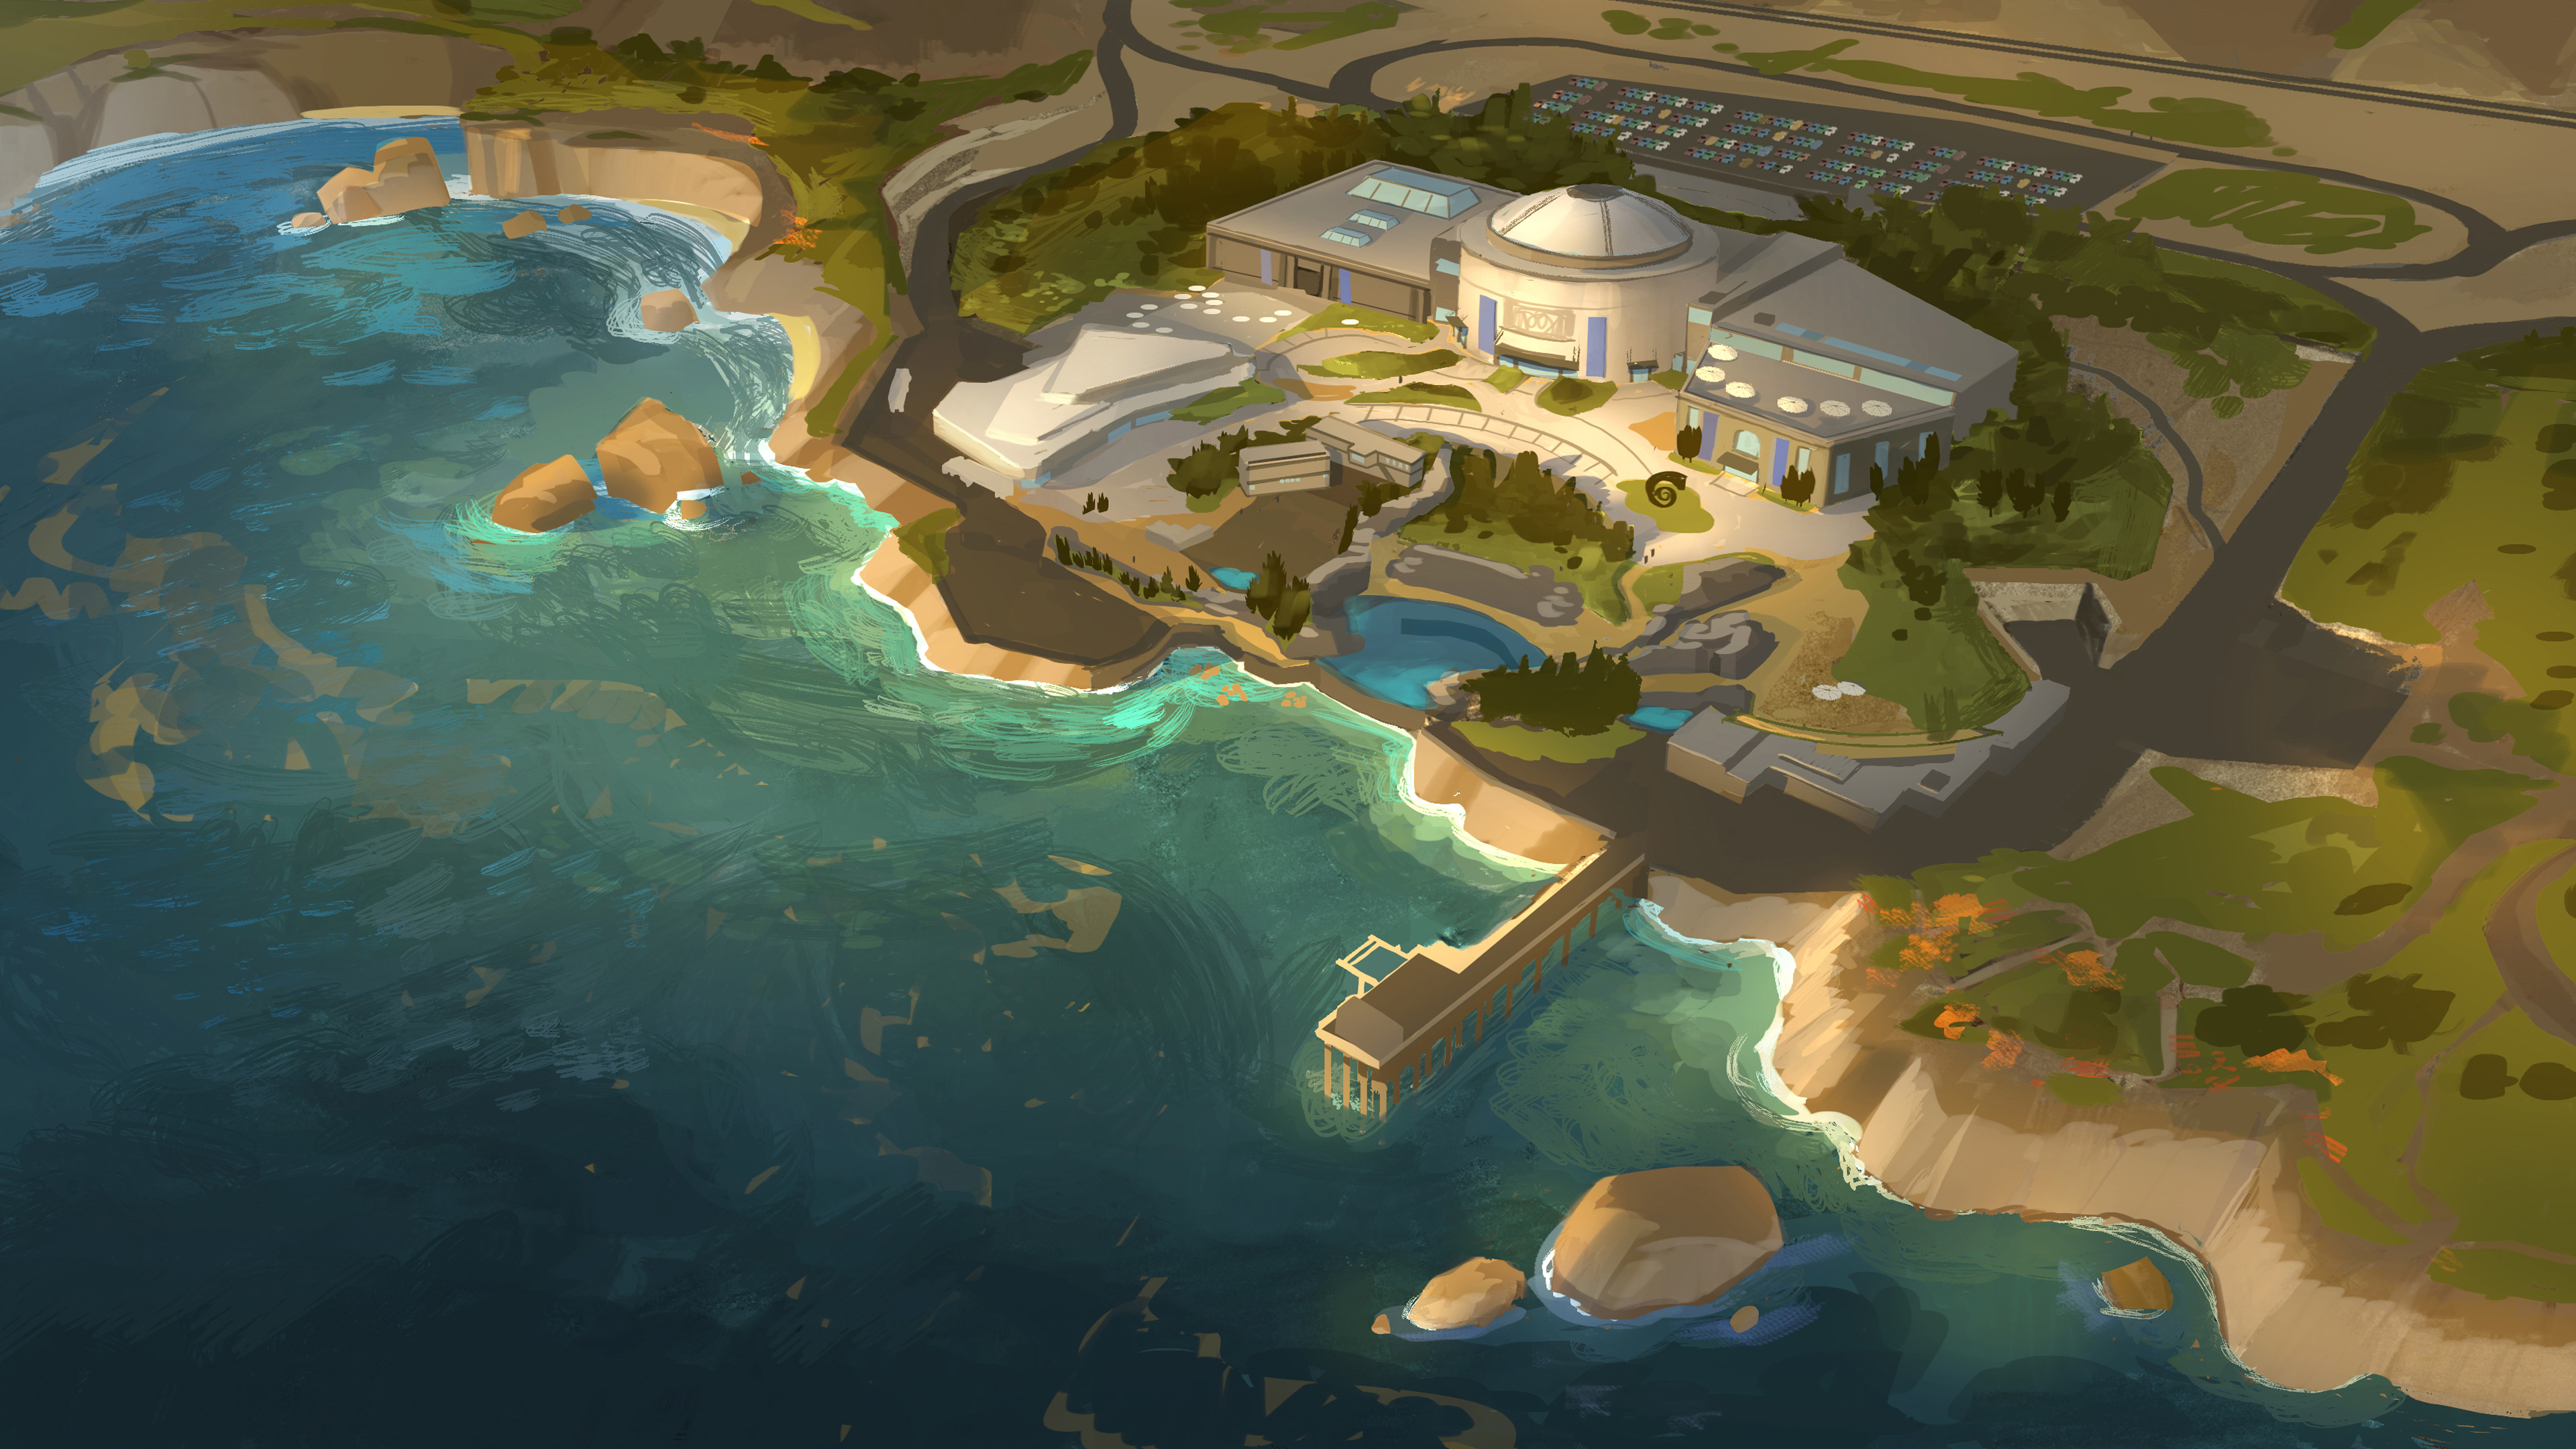 FINDING DORY – MLI Overview Painting (Concept Art) by Artist Tim Evatt. ©2016 Disney•Pixar. All Rights Reserved.